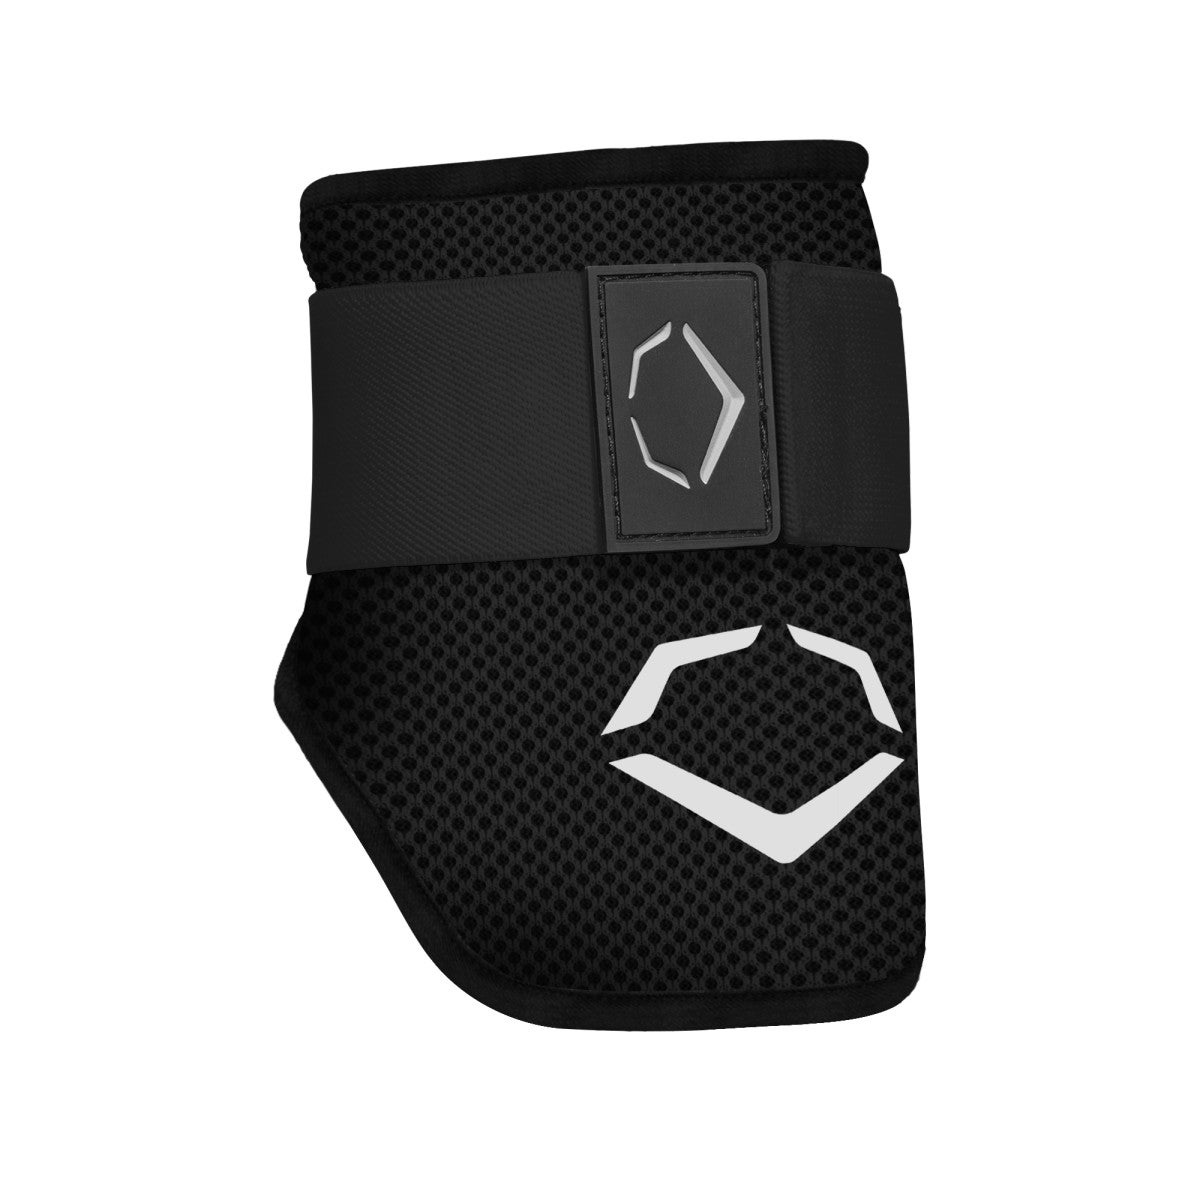 Adult SRZ-1 Batter's Elbow Guard